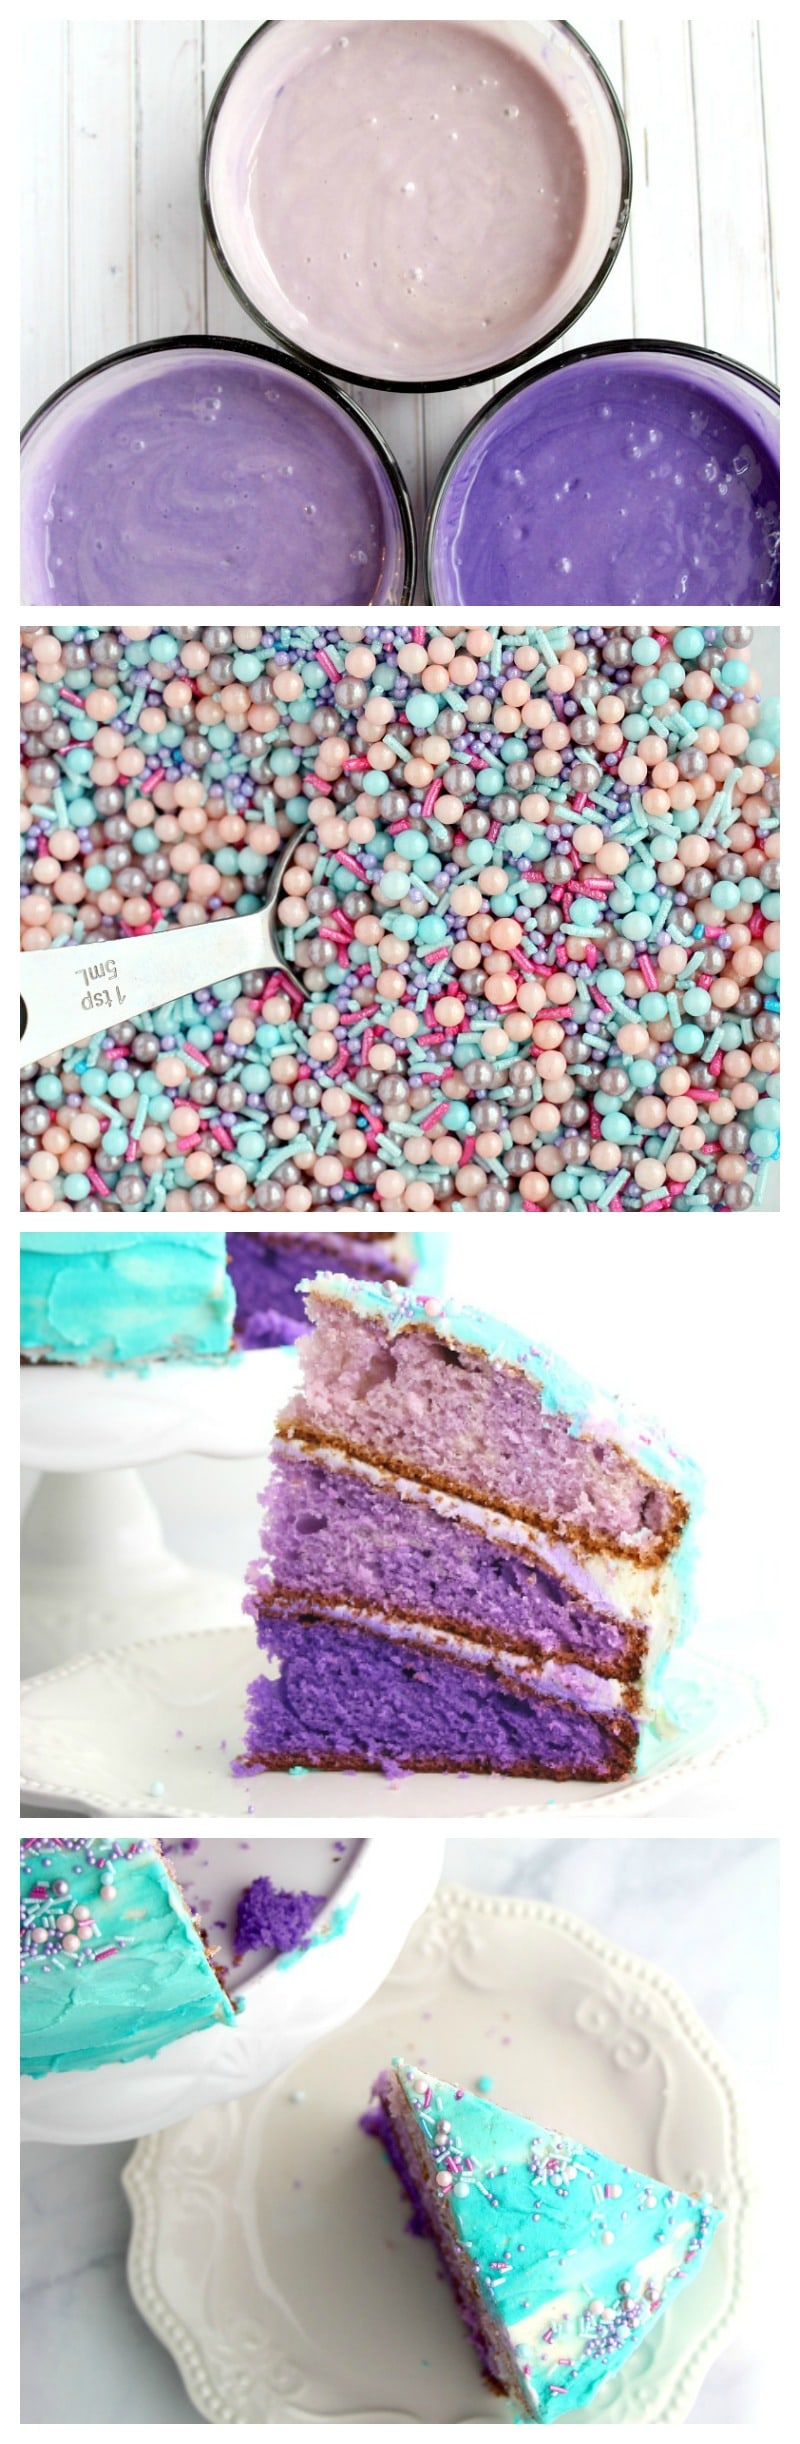 mermaid cake recipe